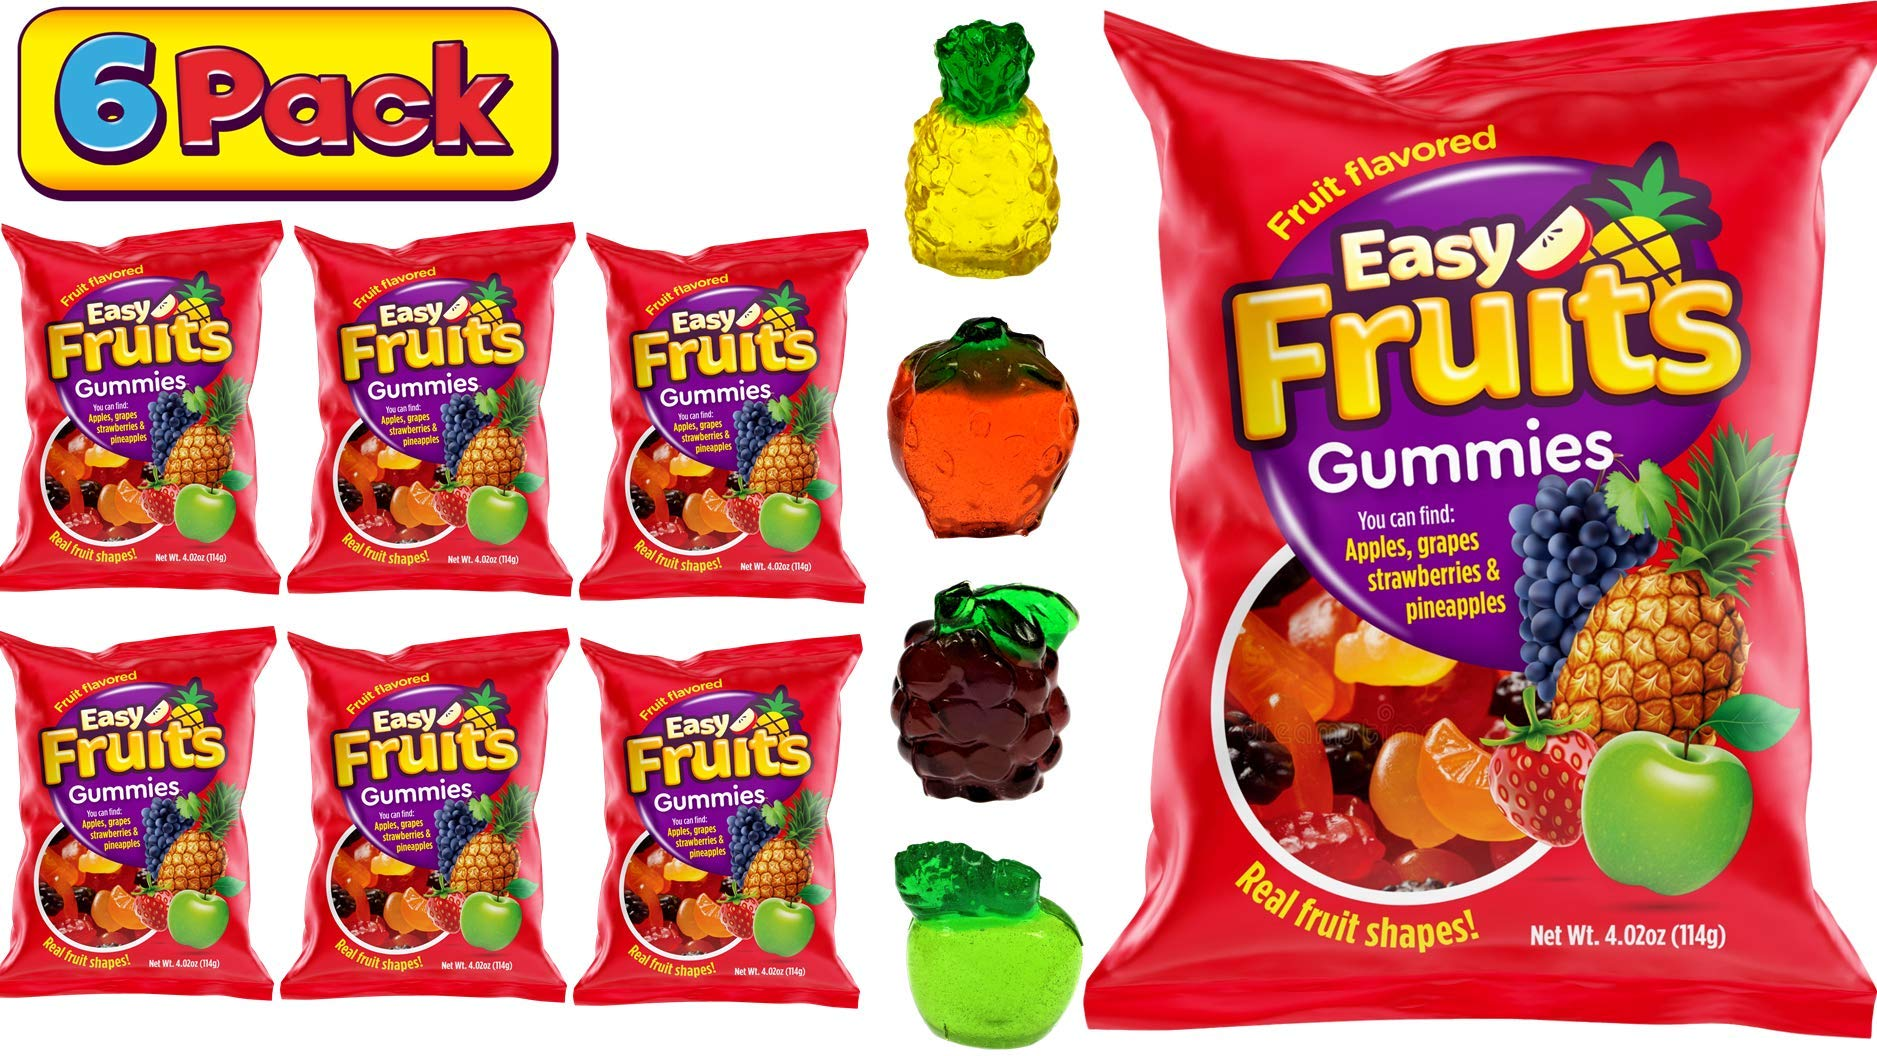 Gummy Fruits 3D Easy Fruits (6 Packs) Soft Chewy Jelly Fruits Gummies Like Gummy Bears I 4 Flavors & Shapes Grape Apple Pineapple & Strawberry I Fat & Dairy Free Gummies Candy I Block-Fruit-6